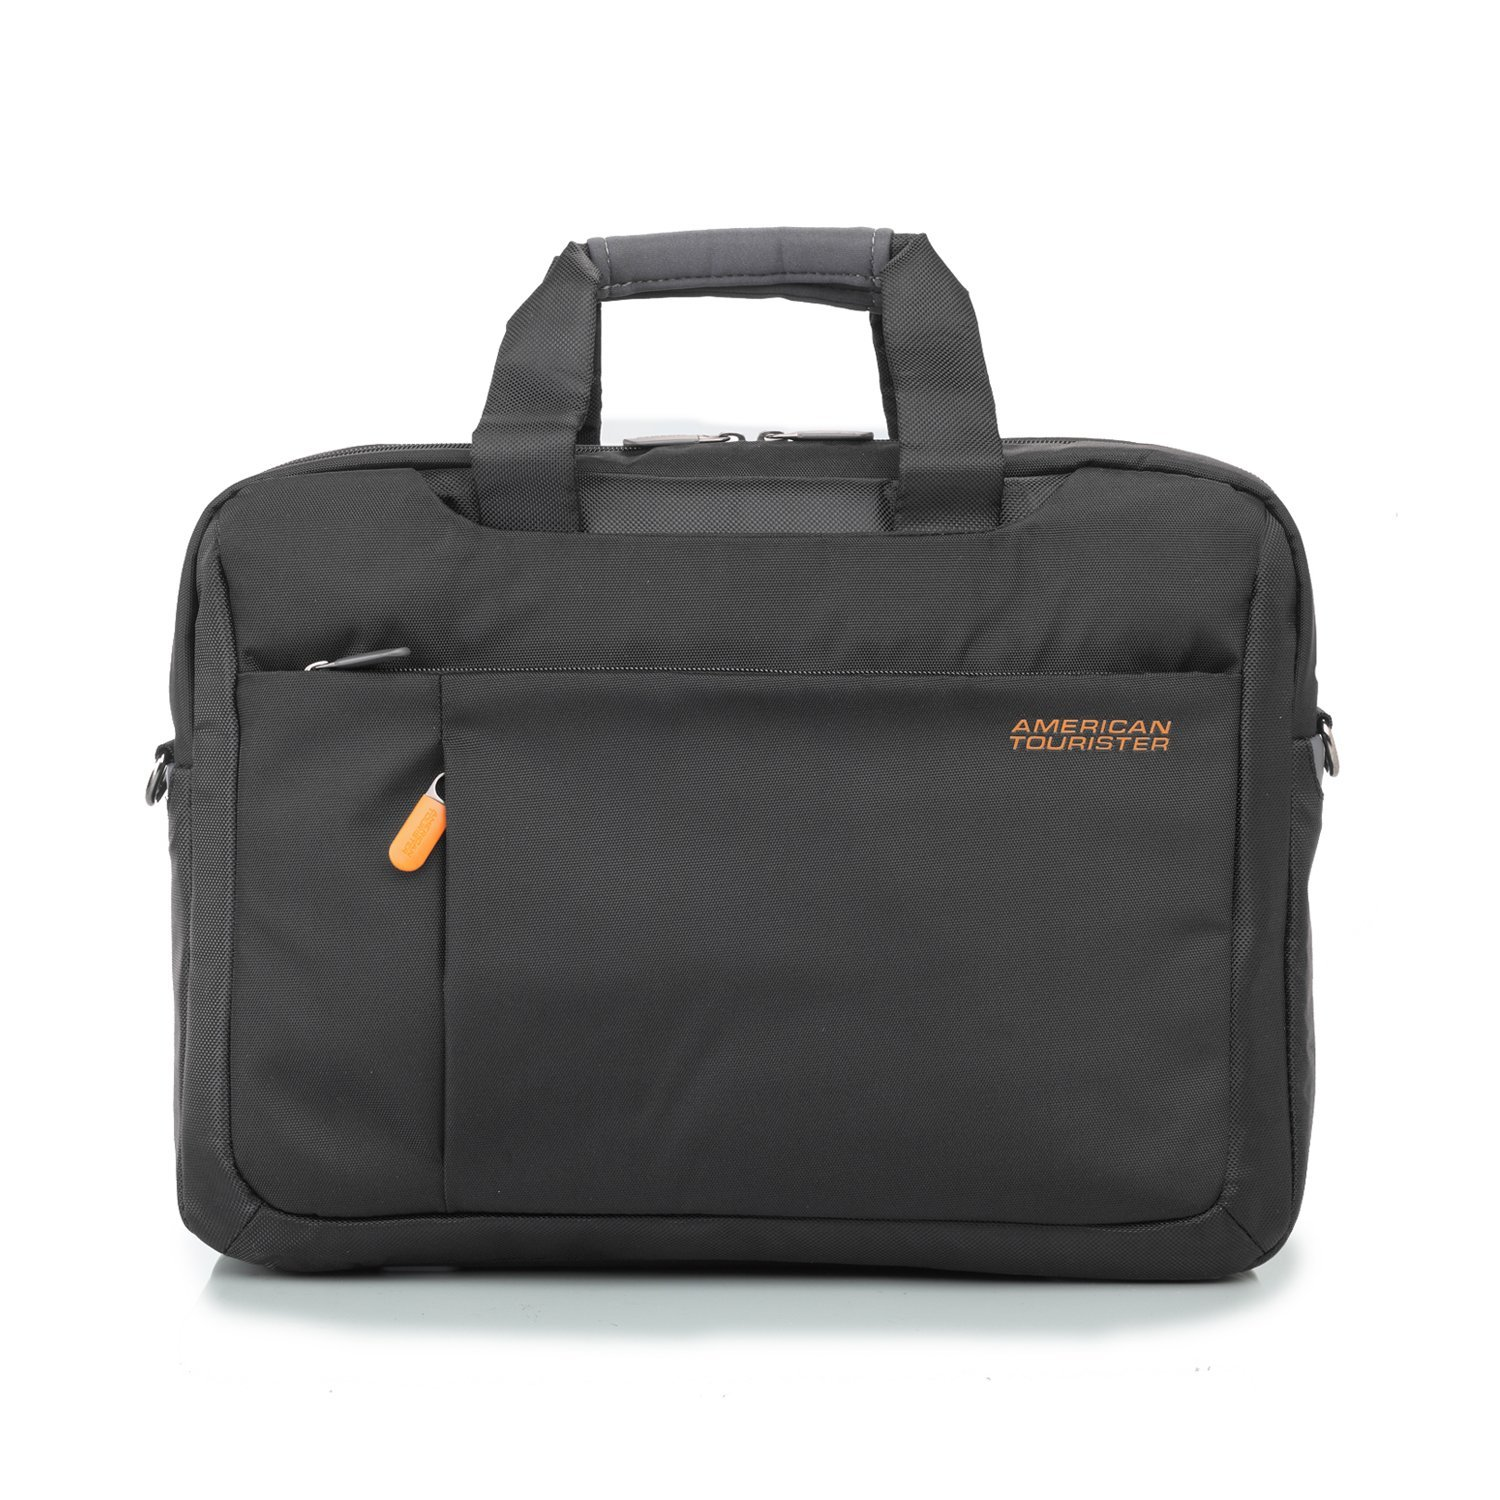 American tourister bags wallets luggage american tourister 3 way black grey office bag - American tourister office bags ...